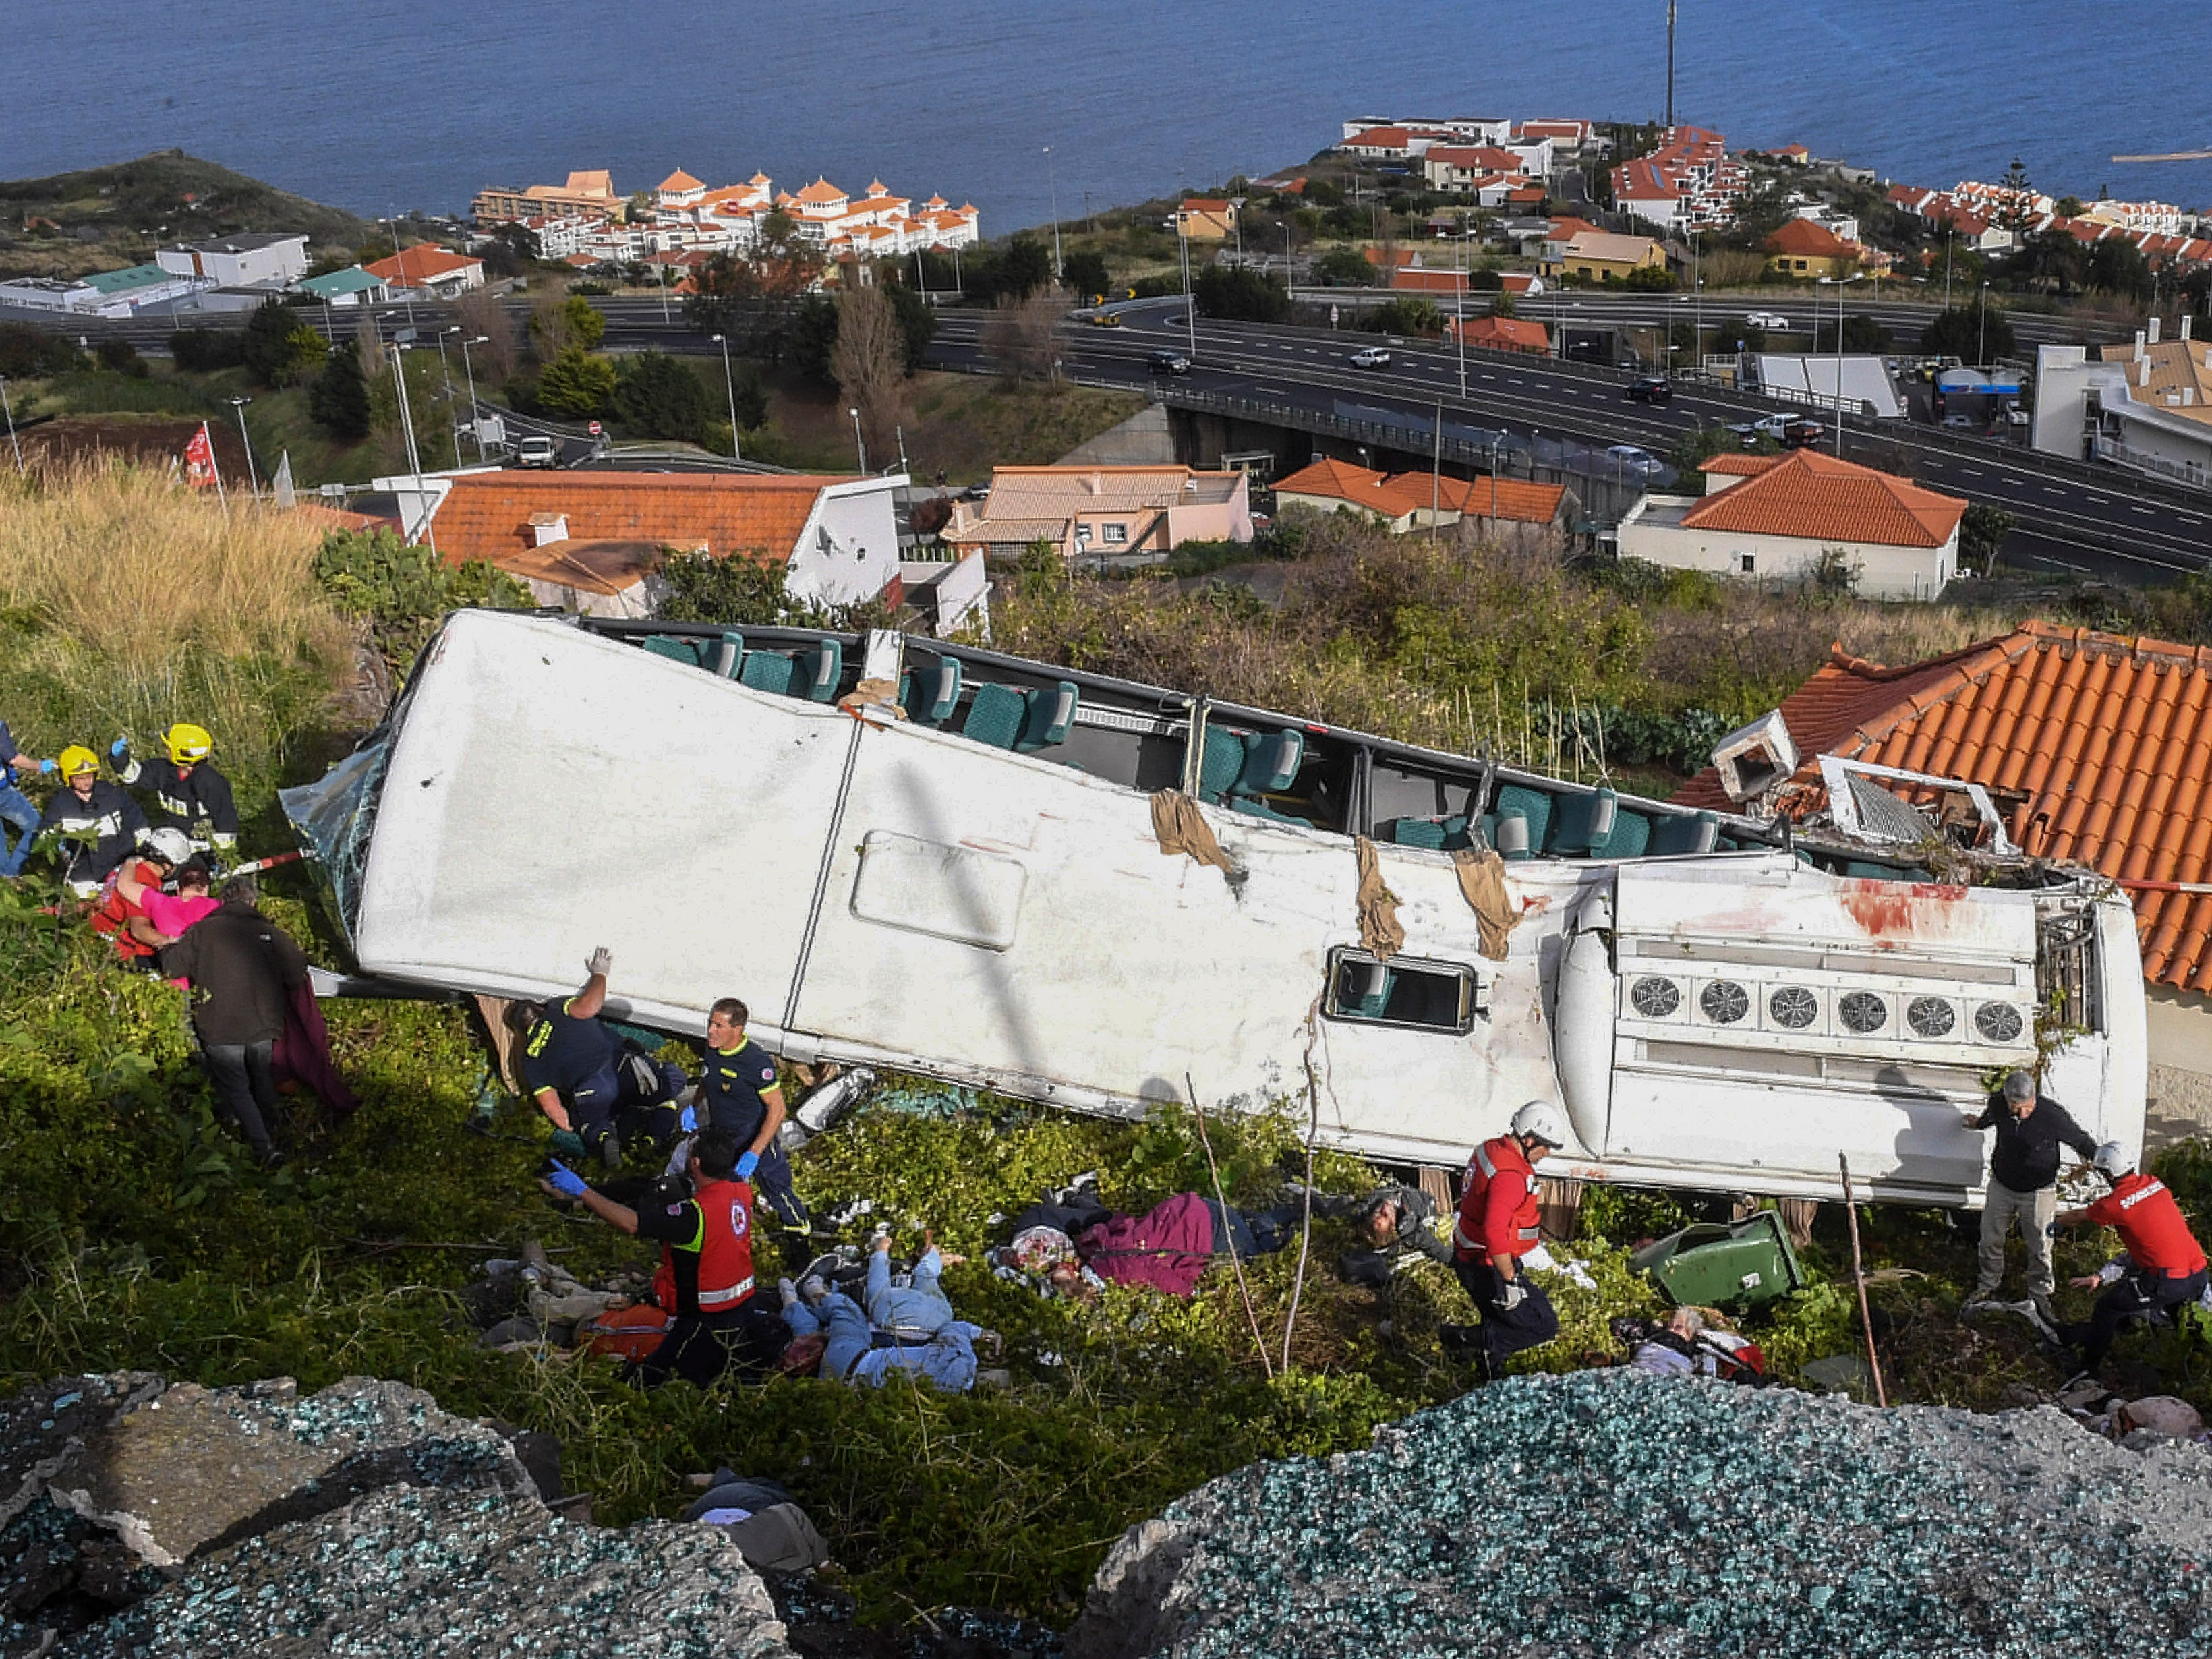 Rescue officials attend the scene after a tour bus crashed in Canico on Portugal's Madeira Island, Wednesday, April 17, 2019. The tour bus carrying German tourists crashed on Portugal's Madeira Island on Wednesday, killing more than a few dozen people and injuring a few dozen others, local authorities said.